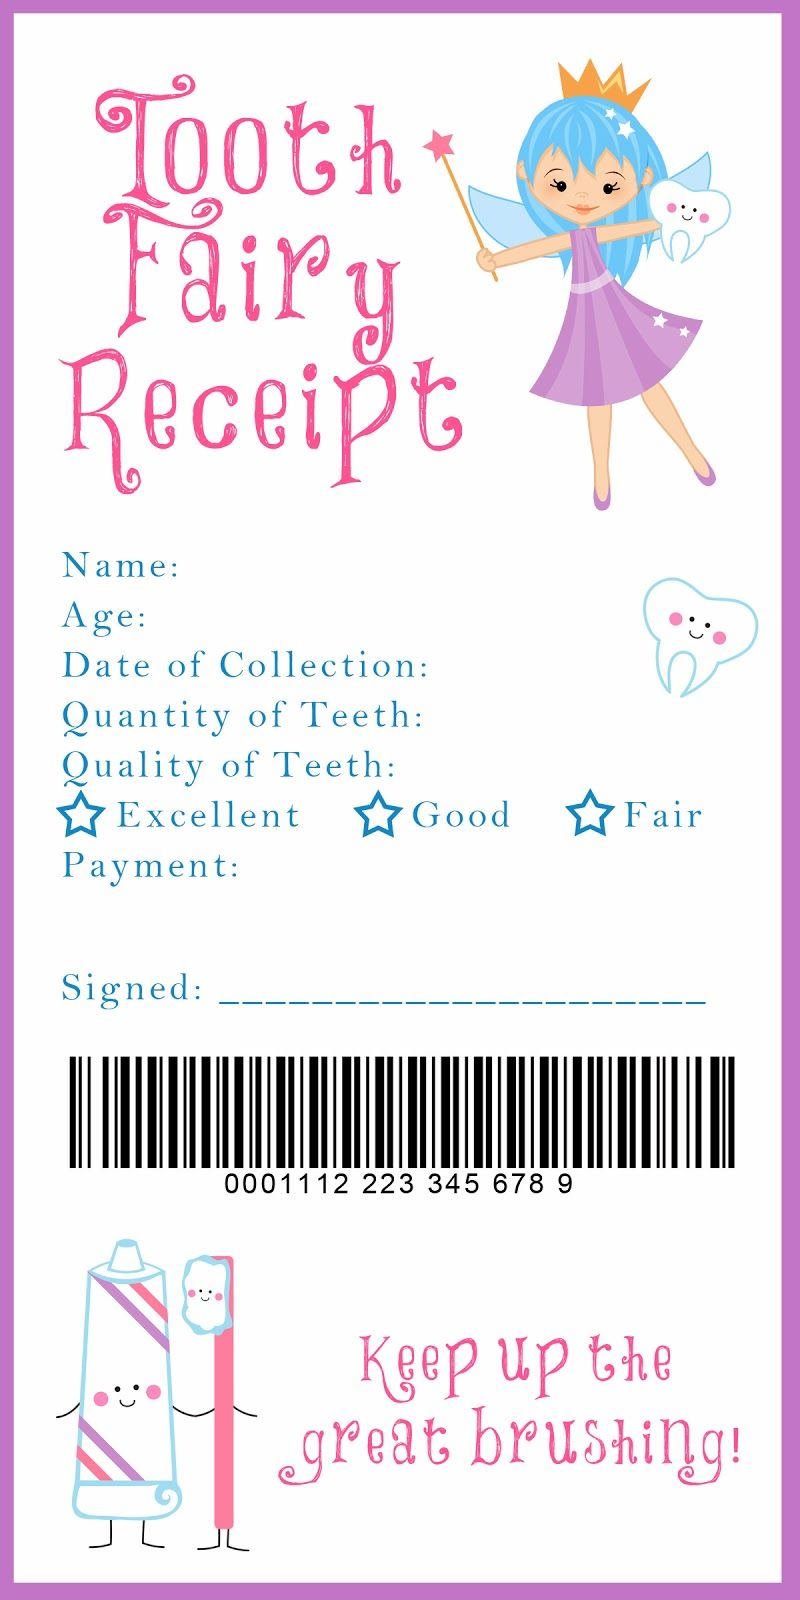 Tooth Fairy Receipt Printable Such A Cute Idea Just For Fun